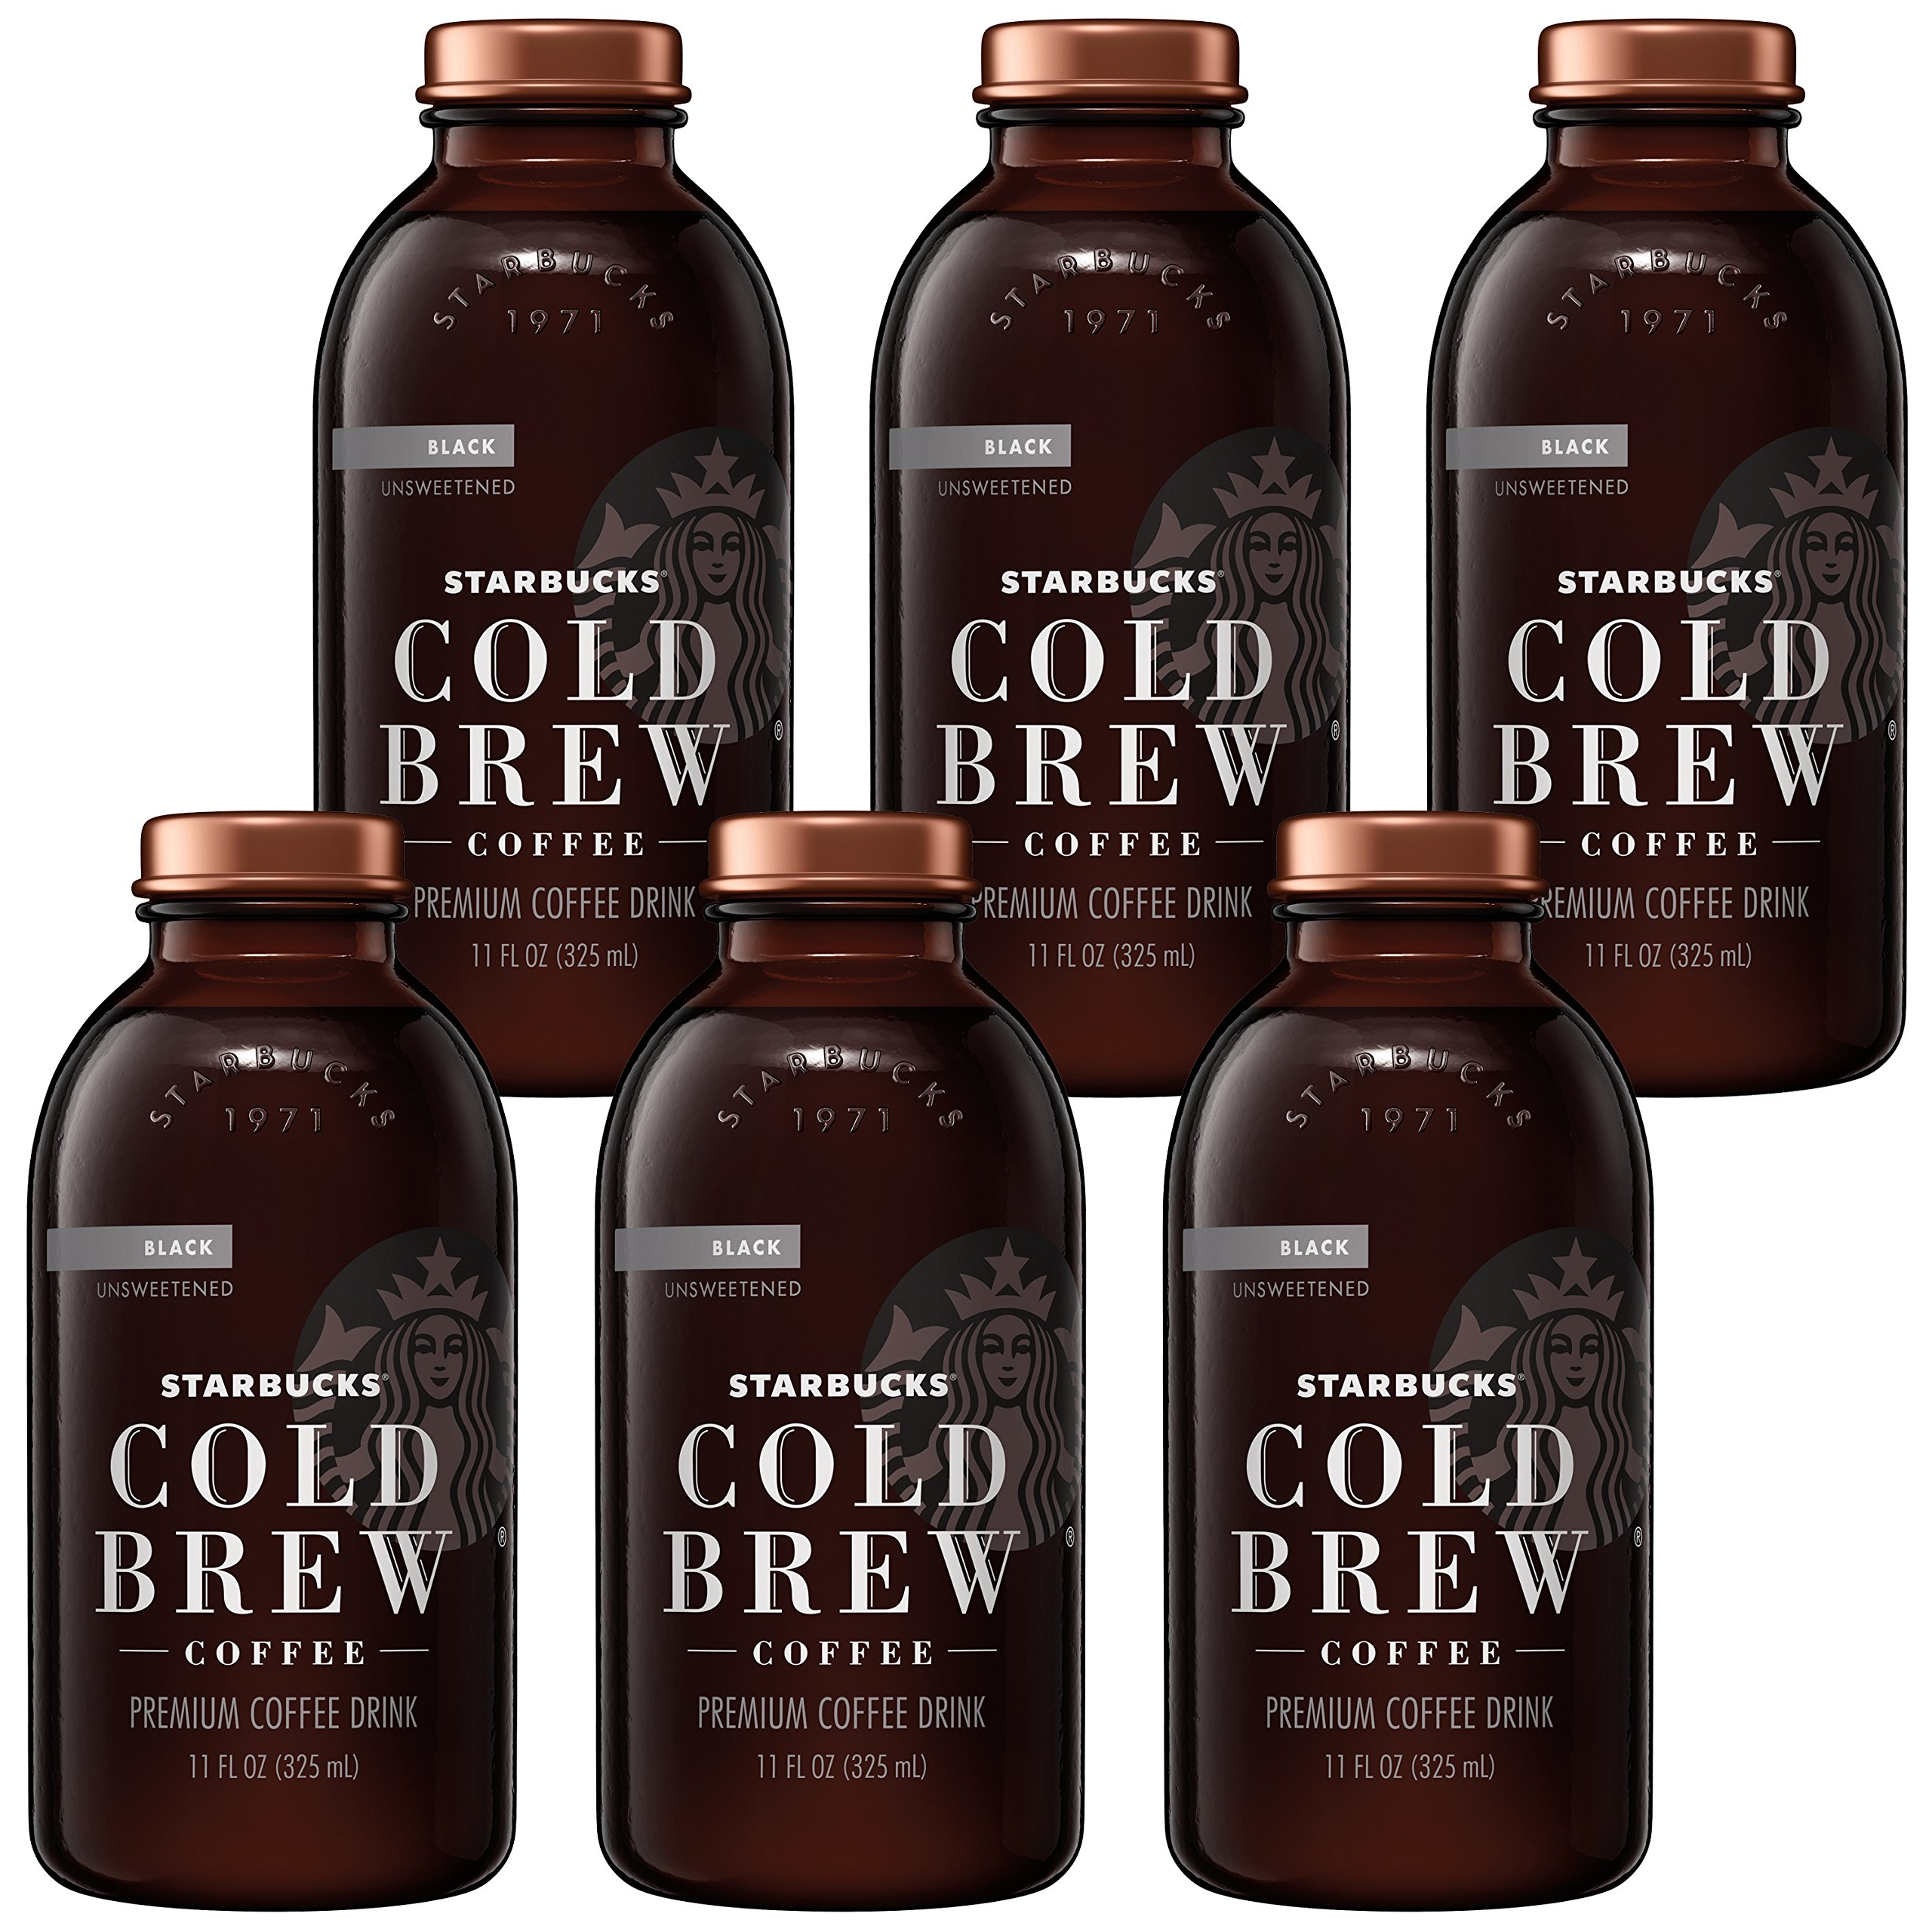 Starbucks Cold Brew Coffee, Black Unsweetened, 11 oz Glass Bottles, 6 Count by Starbucks (Image #4)